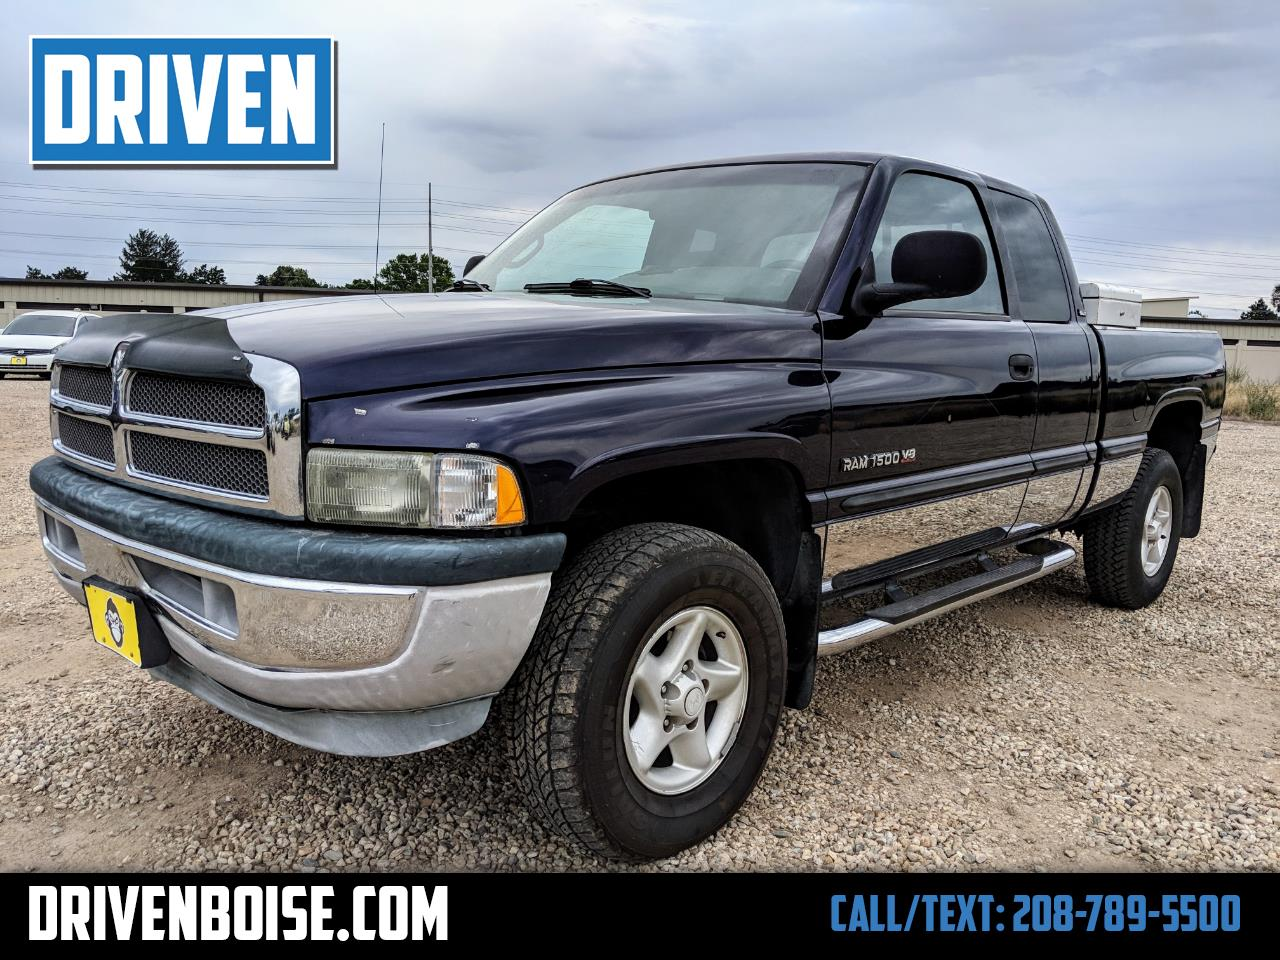 1999 Dodge Ram 1500 Quad Cab Short Bed 4WD